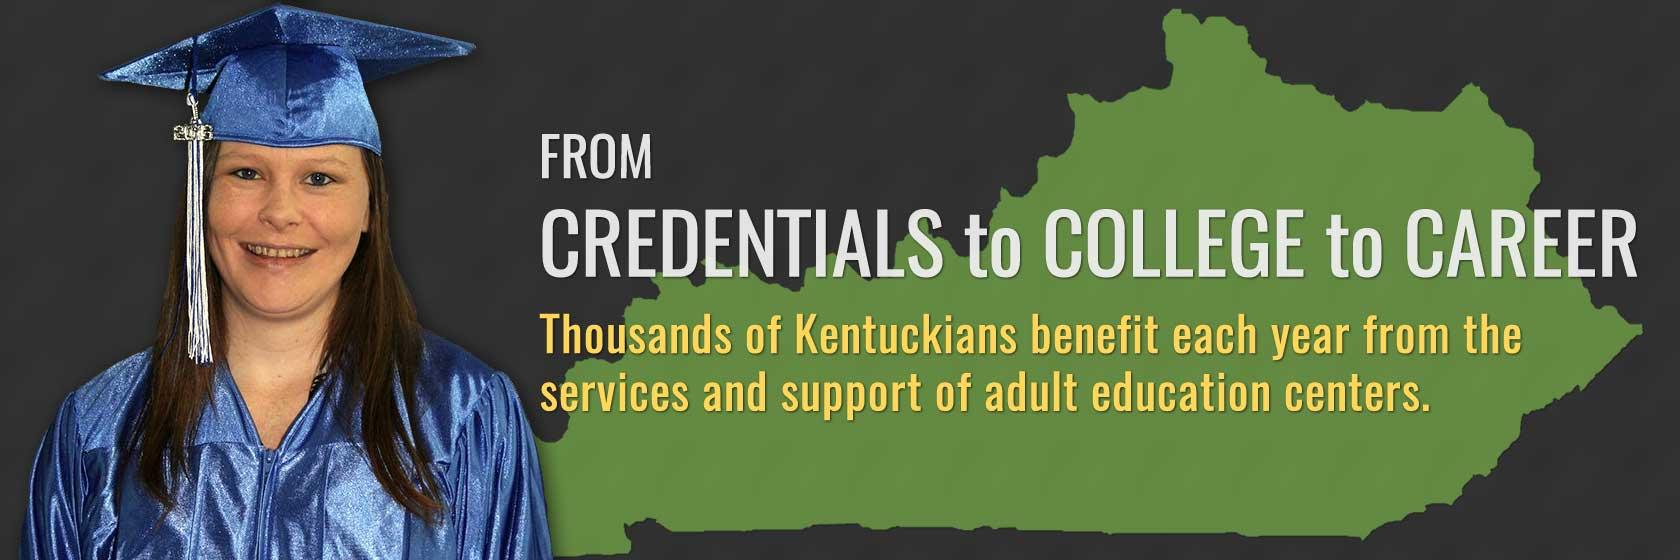 Learn more about Kentucky's adult education program.